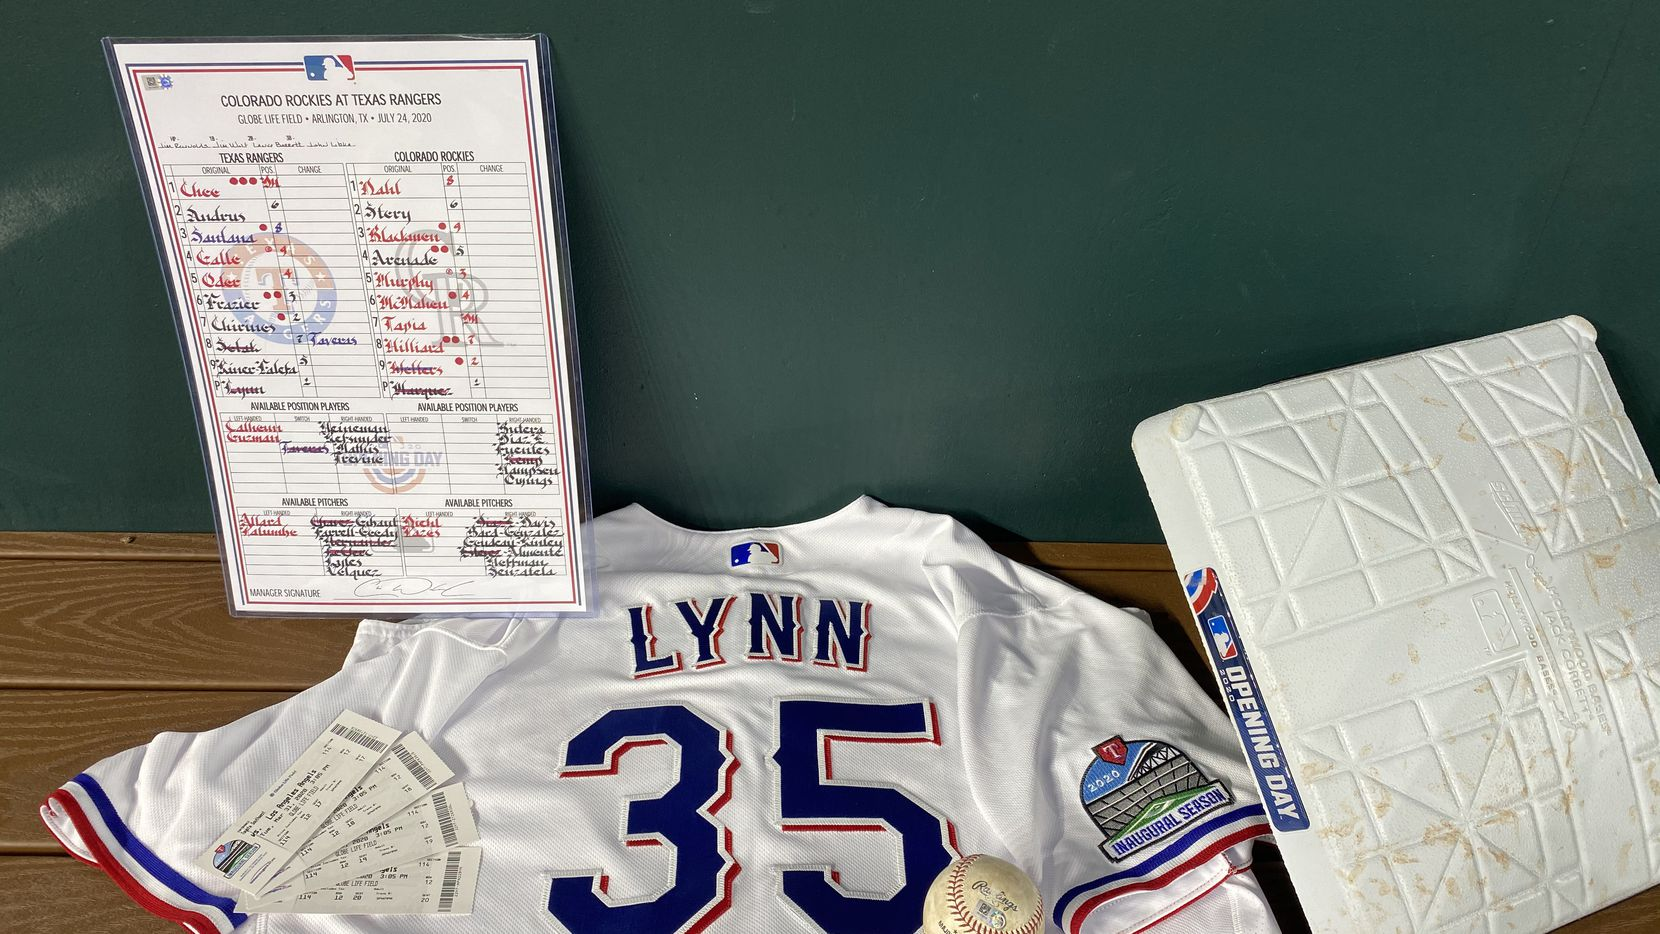 These are the items that the Rangers donated to the MLB Hall of Fame.